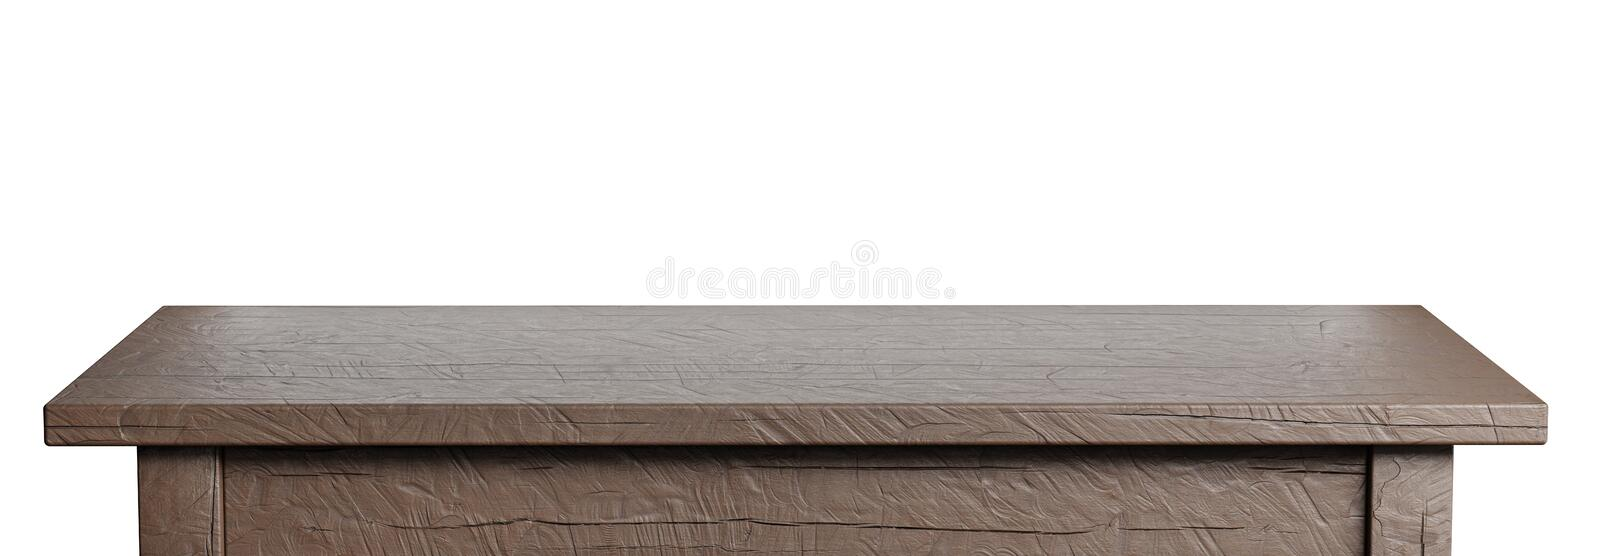 Rustic, empty table isolated on white. Clipping path included. Suitable for product display. 3D render image. Rustic, empty table isolated on white background stock illustration